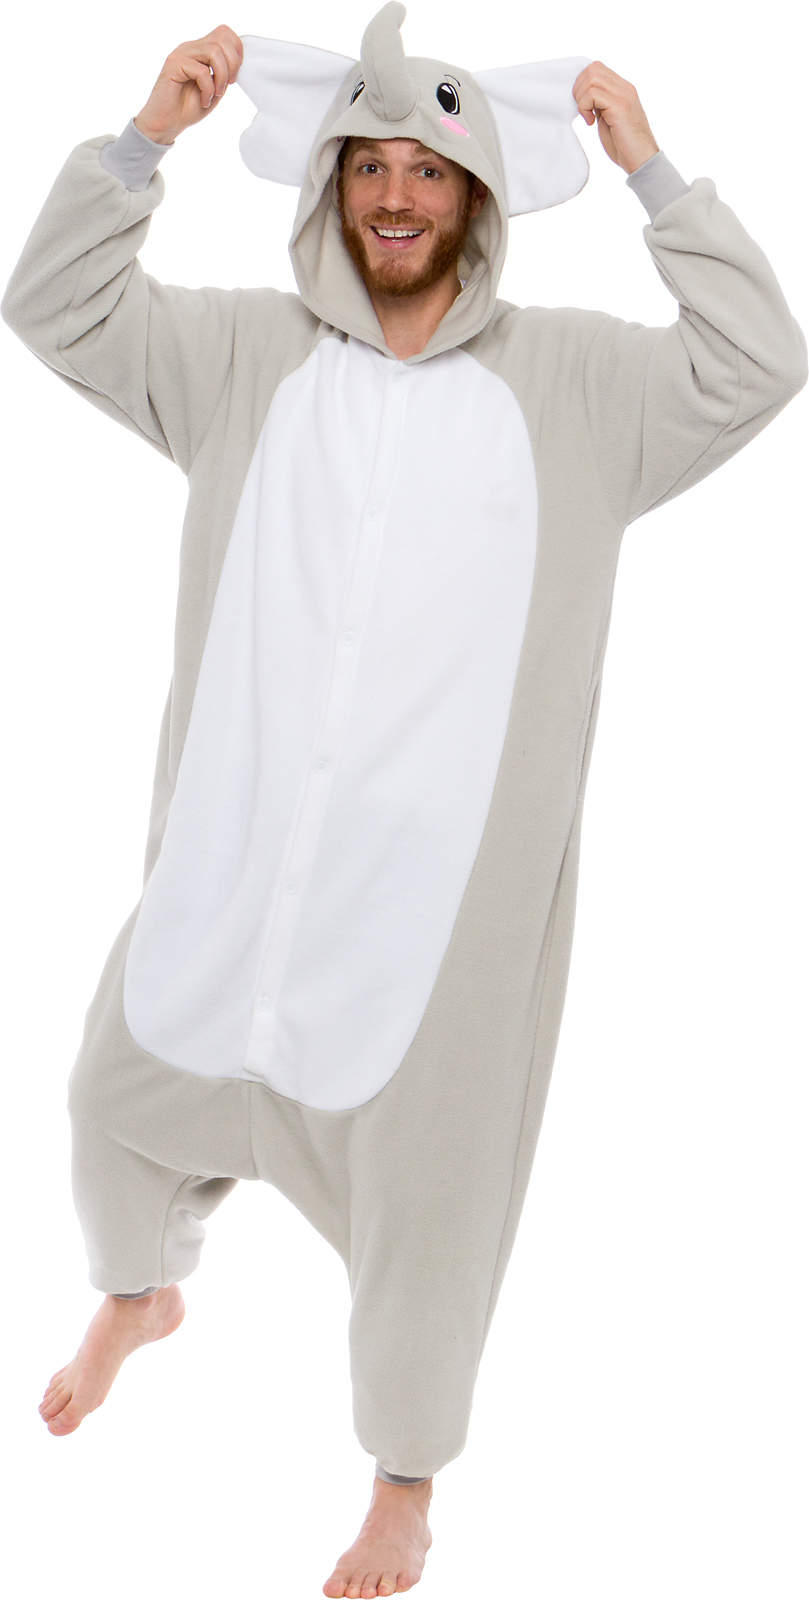 SILVER LILLY NEW Unisex Adult Plush Animal Cosplay Costume Pajamas (Elephant da0132823